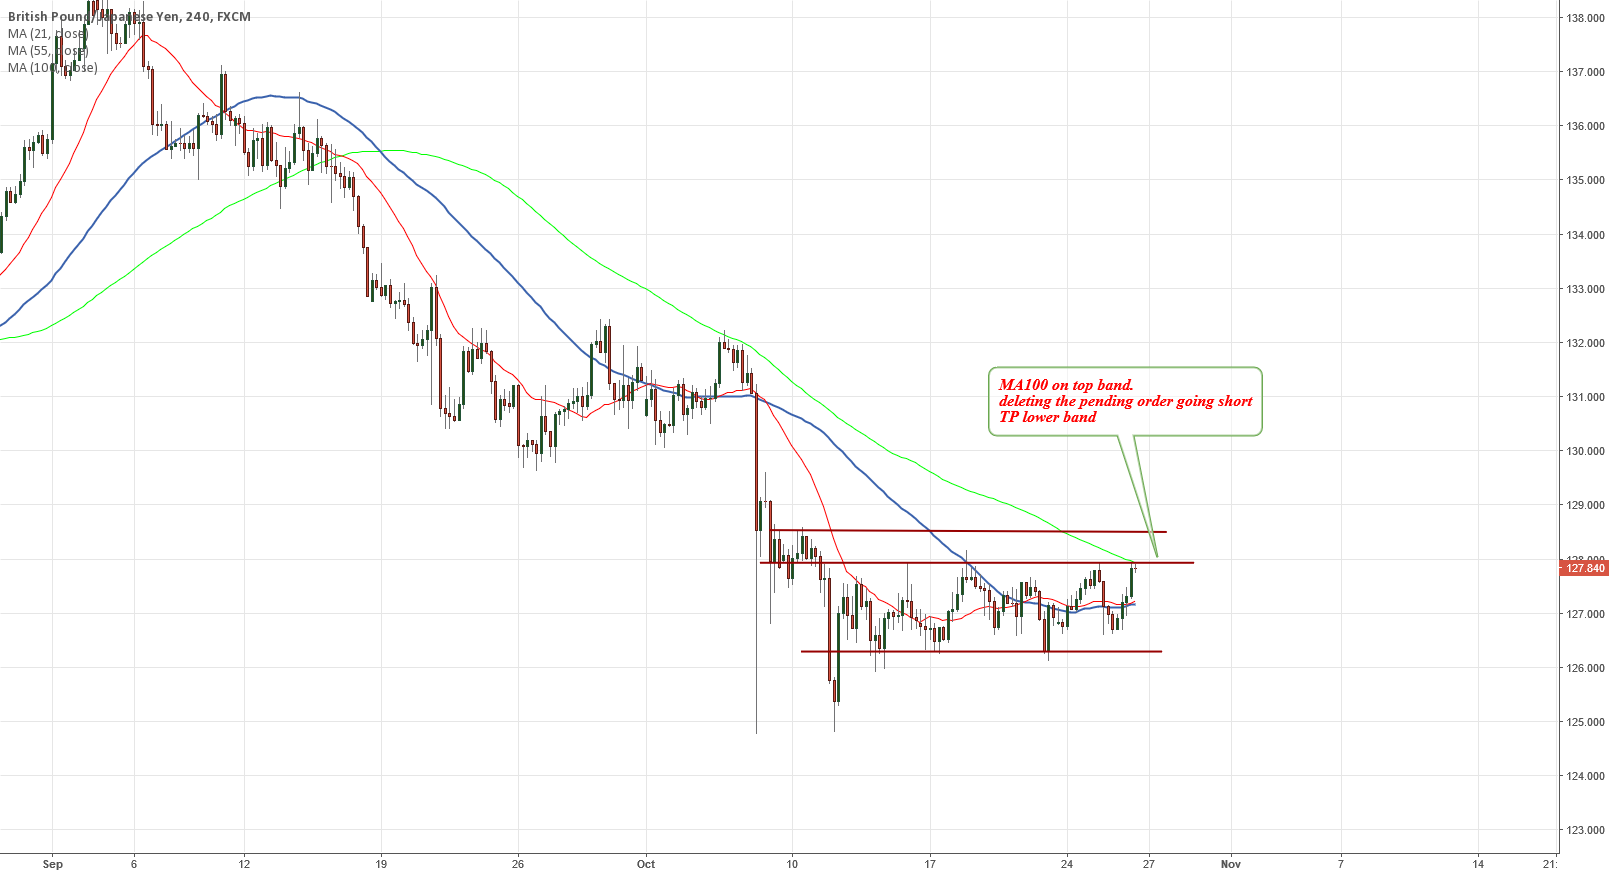 GBPJPY Change of Order